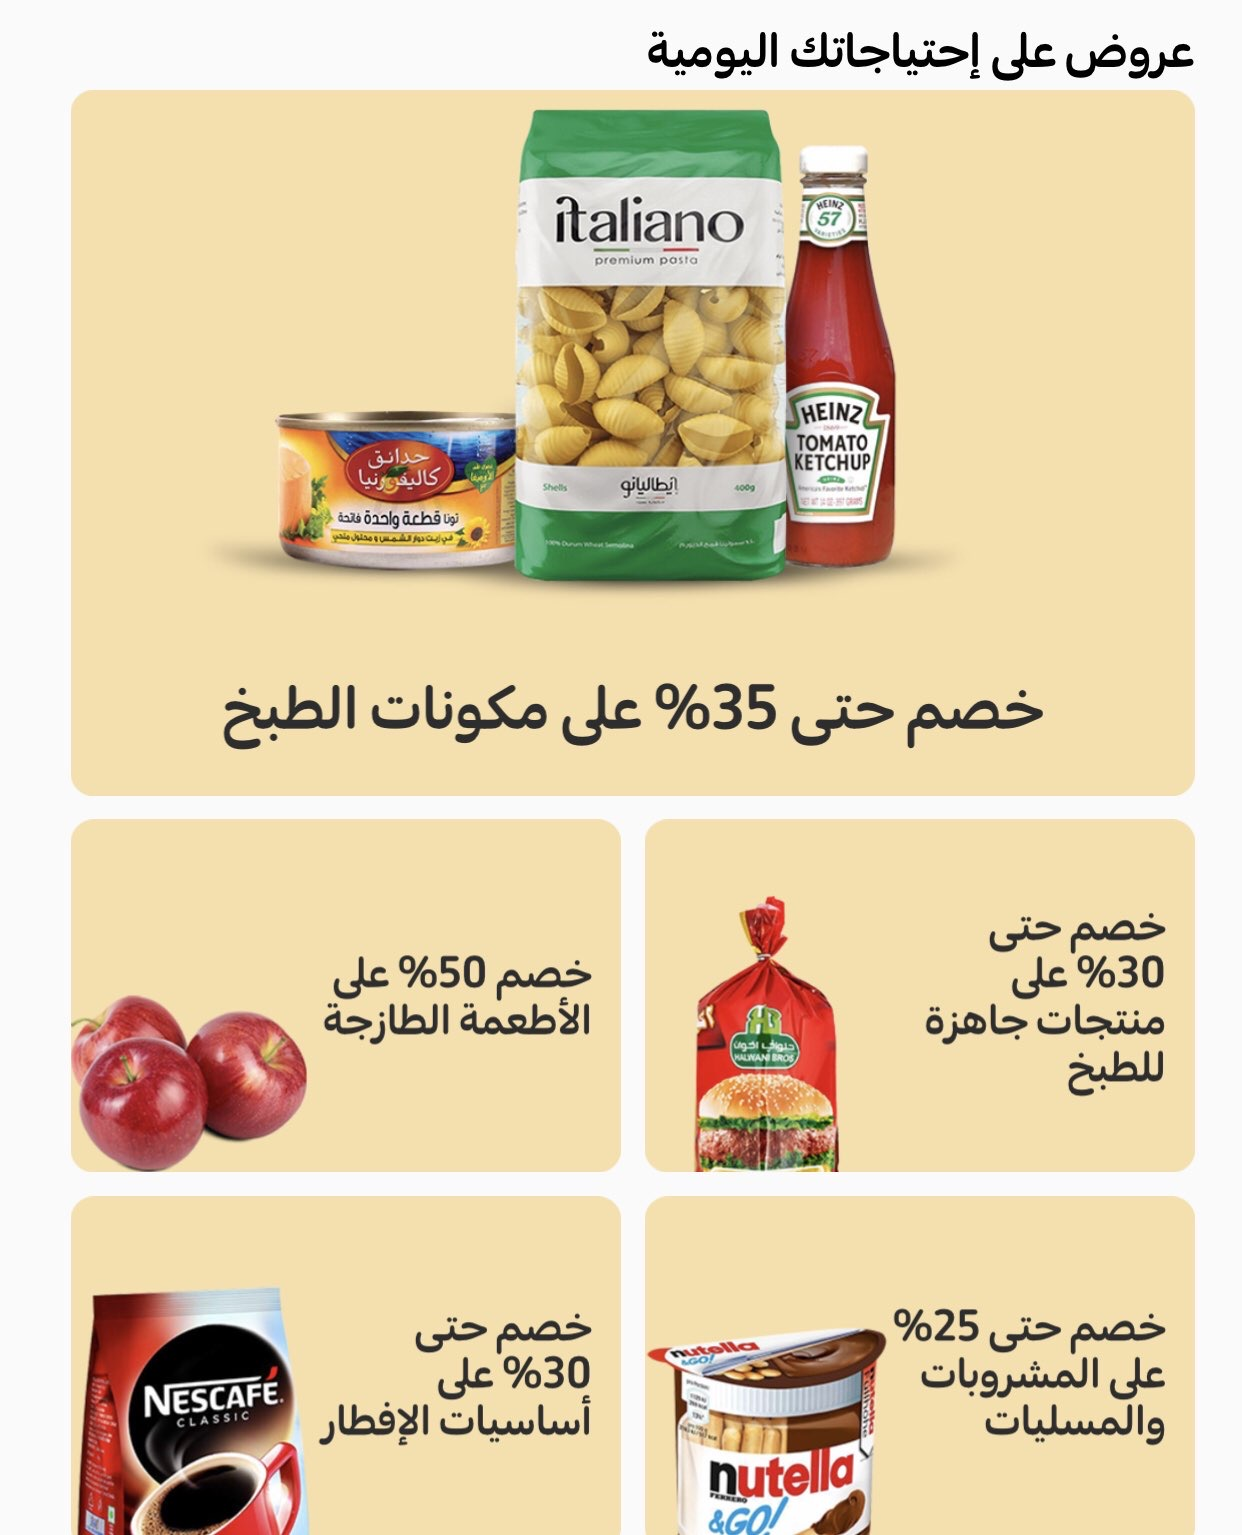 New Carrefour Egypt introduces 50 EGP discount codes on your first order. 18